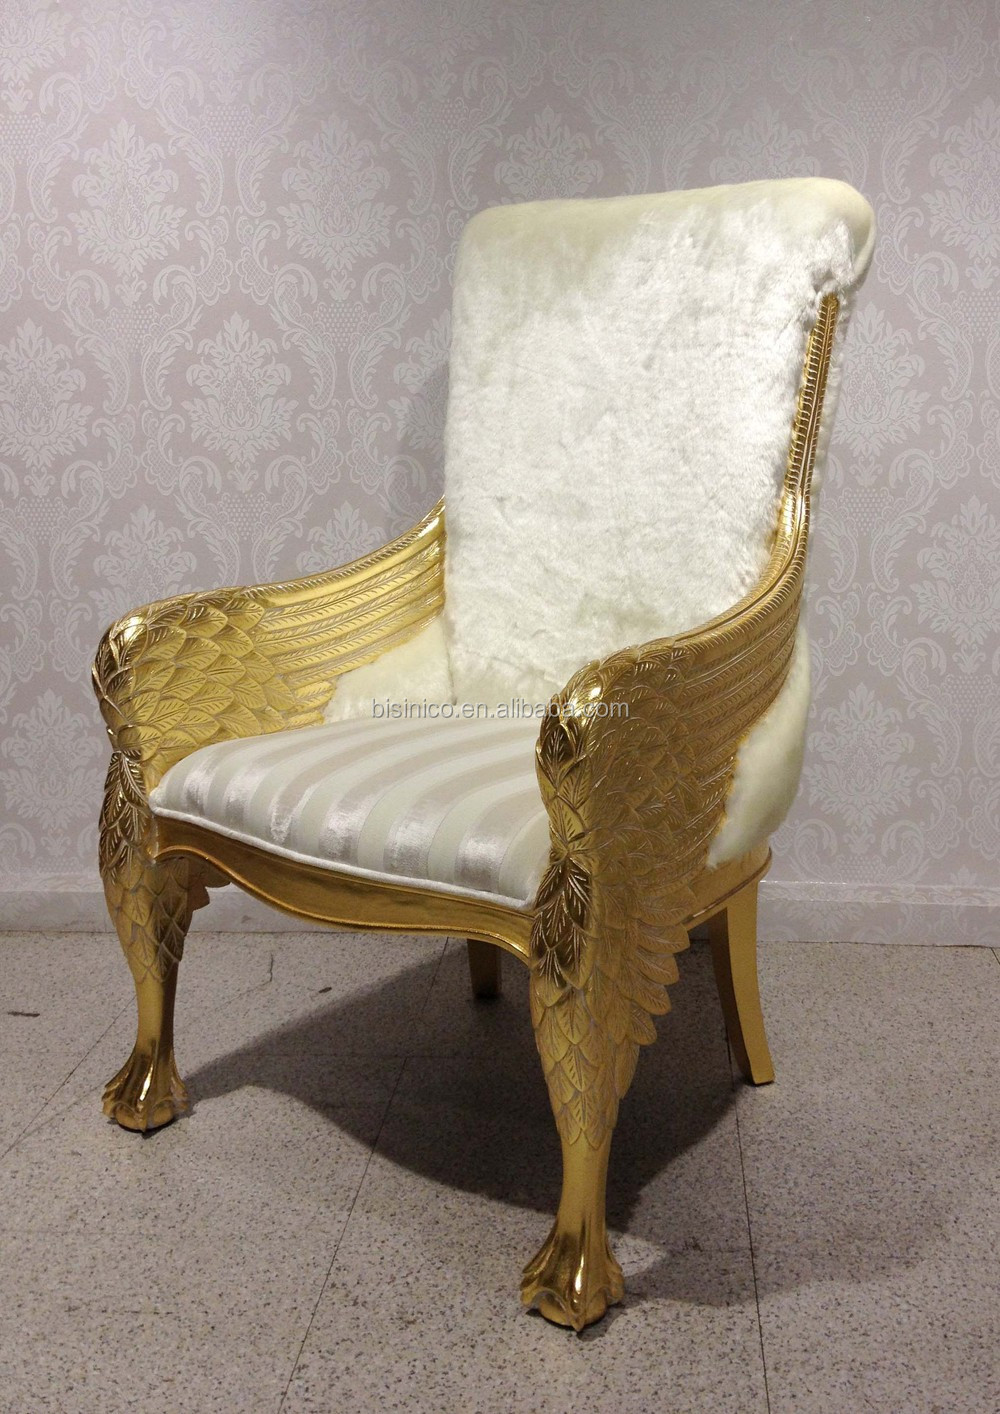 American Style Furniture Sofa Chair Antique Luxury Real Leather Throne Sofa Classic Hand Carved